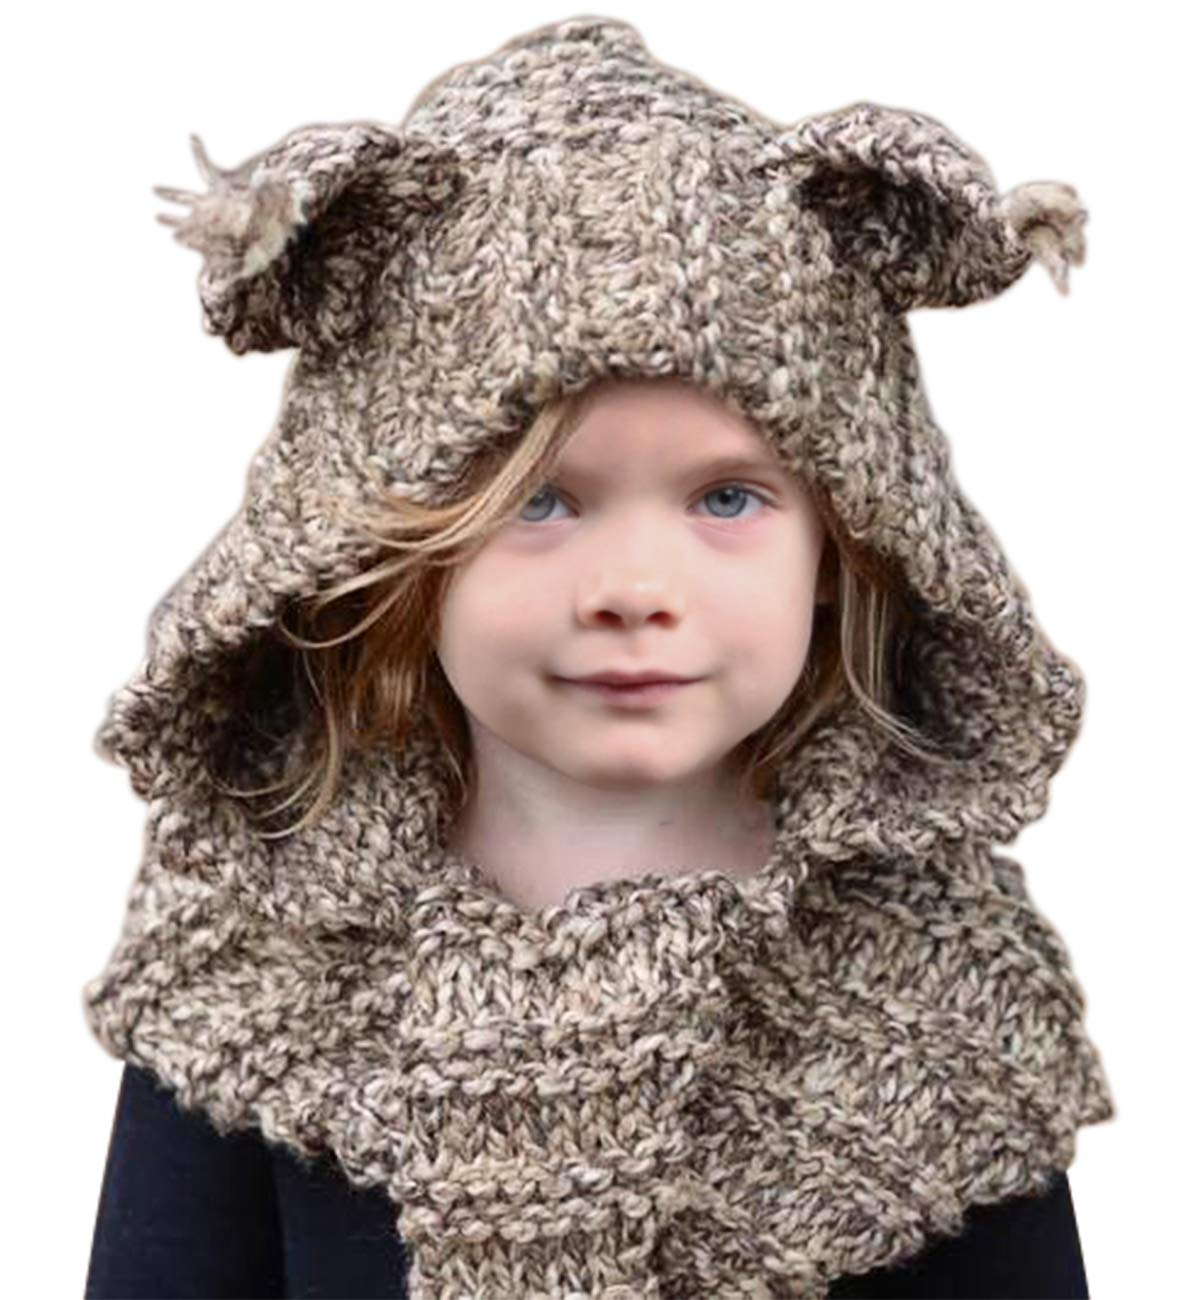 6b07a73059bac0 Amazon.com: Sumolux Winter Kids Warm Cat Animal Hats Knitted Coif Hood  Scarf Beanies for Autumn Winter (Coffee Fox Ears (3-16 Years Old)): Clothing